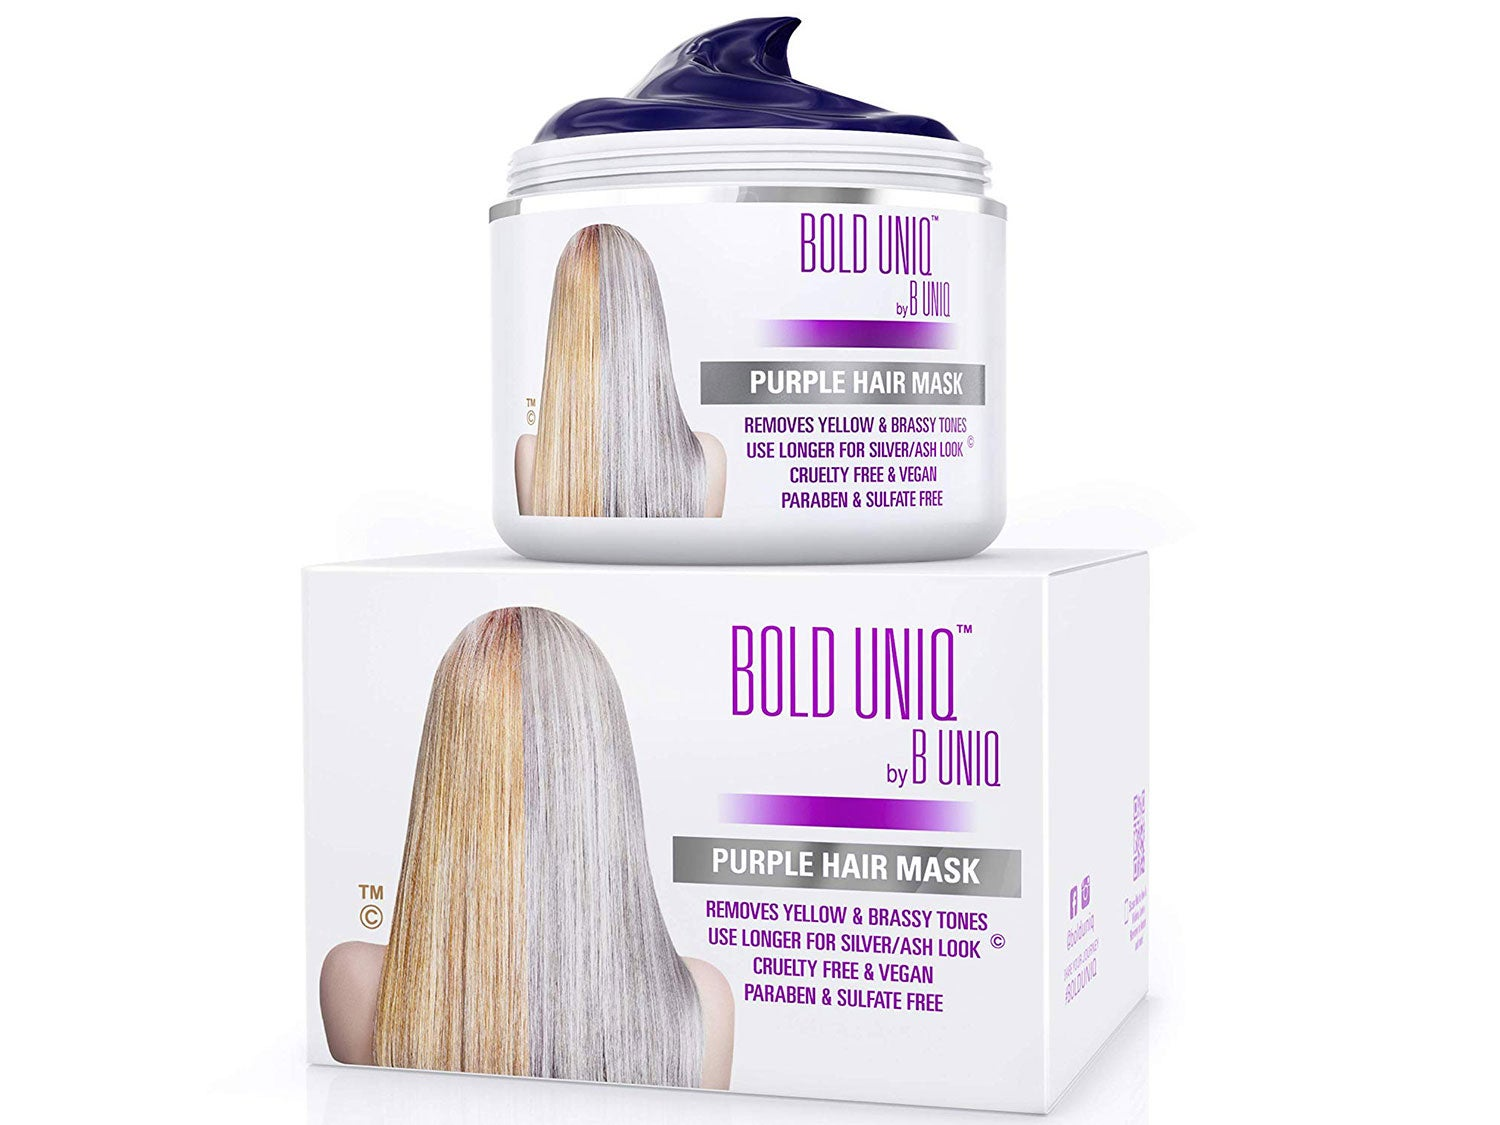 Bold Uniq Purple Hair Mask